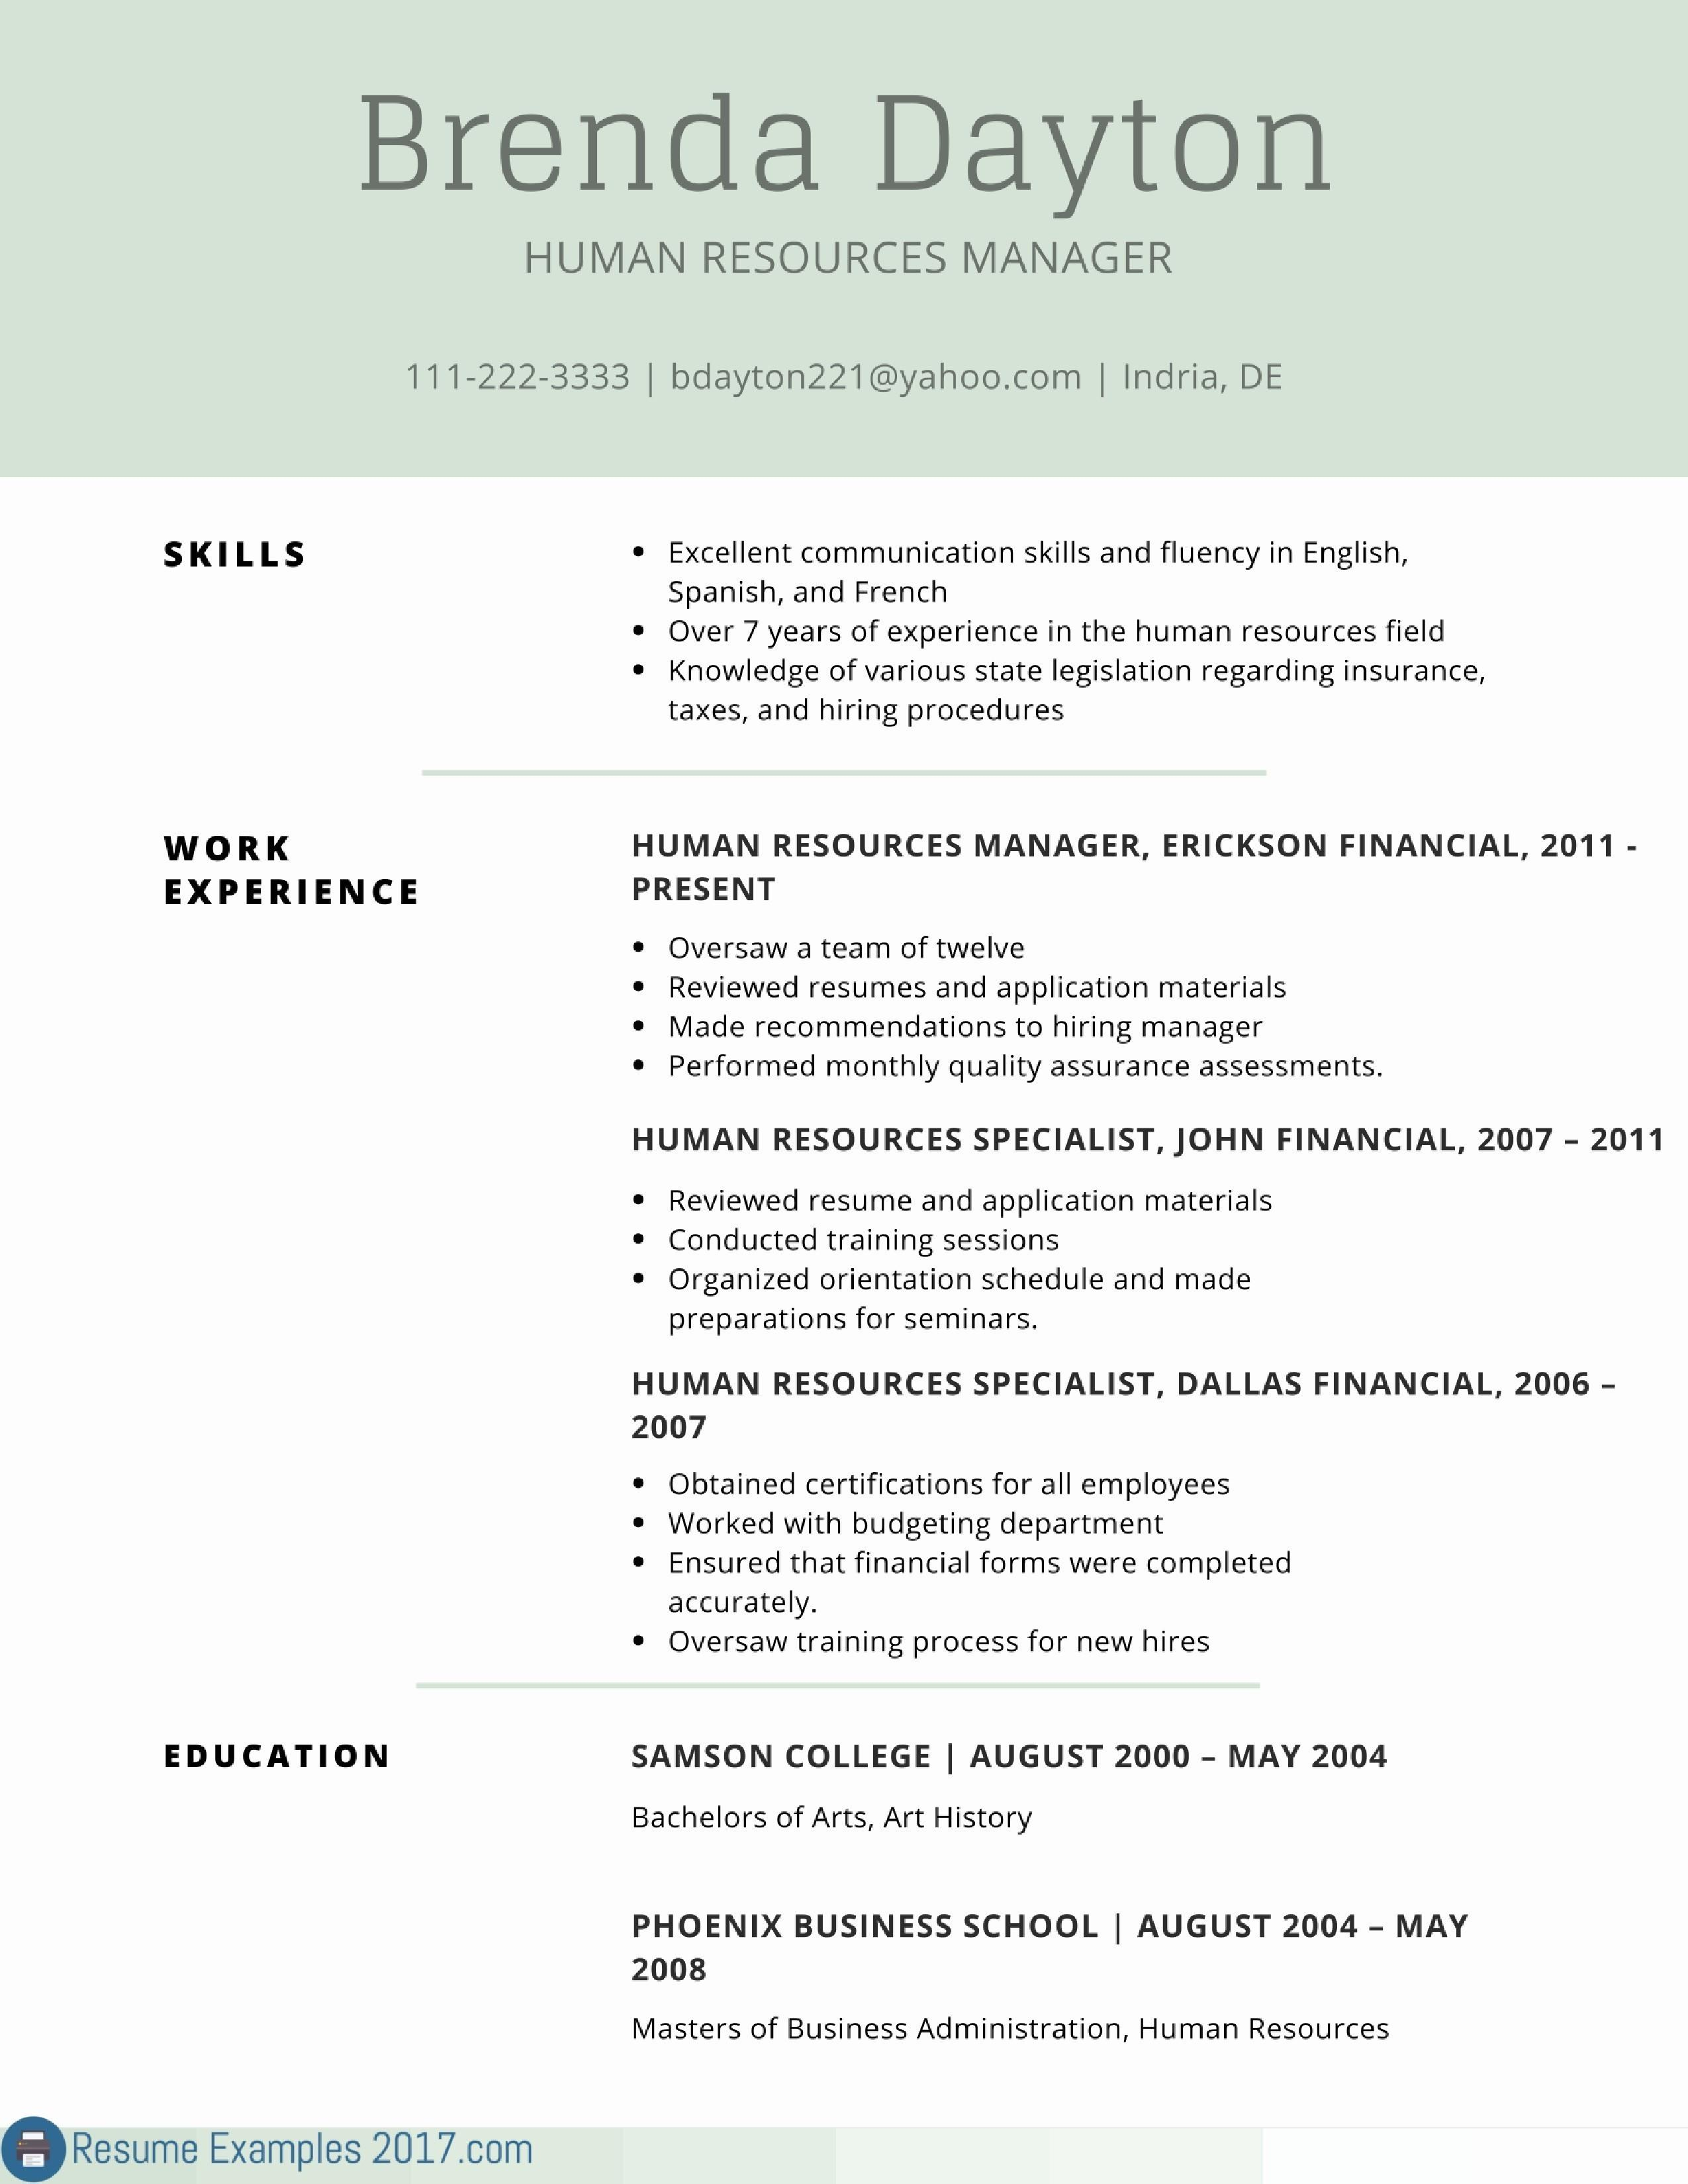 99 Nice Payroll Specialist Resume with Images